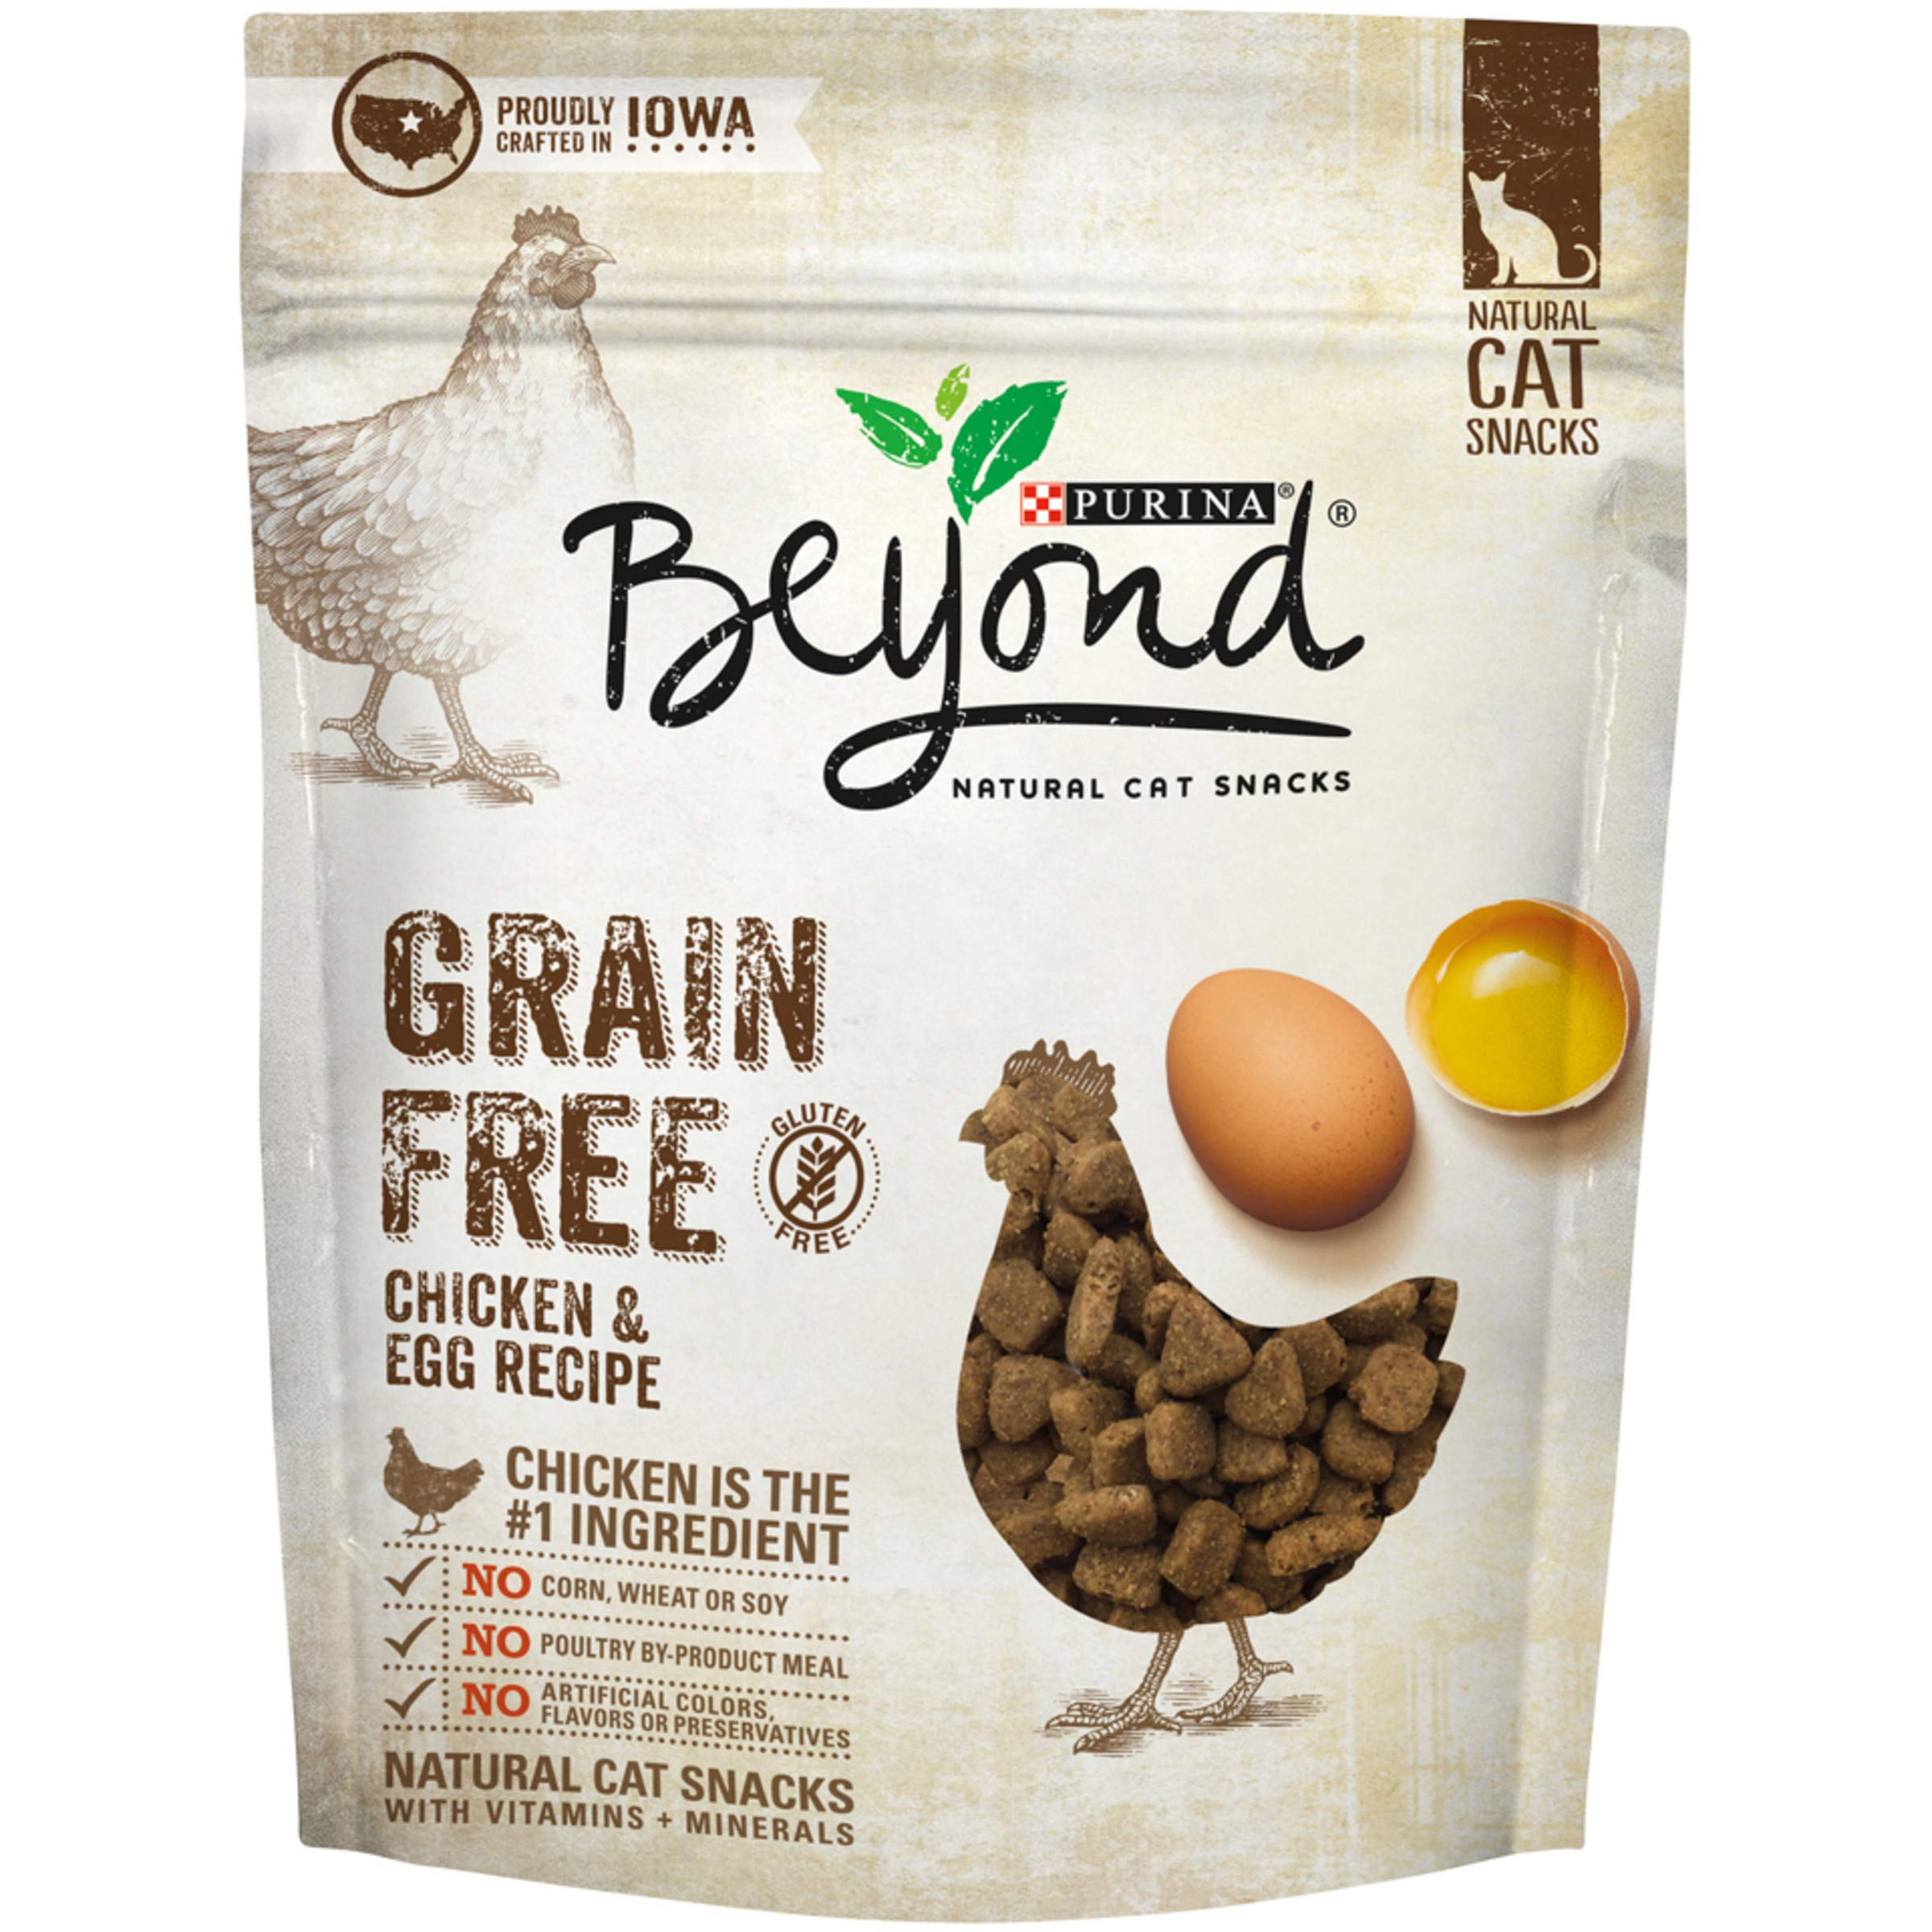 Purina Beyond Grain Free Chicken & Egg Recipes Natural Cat Snacks, 6 oz. Pouch (Pack of 6) by Purina Beyond